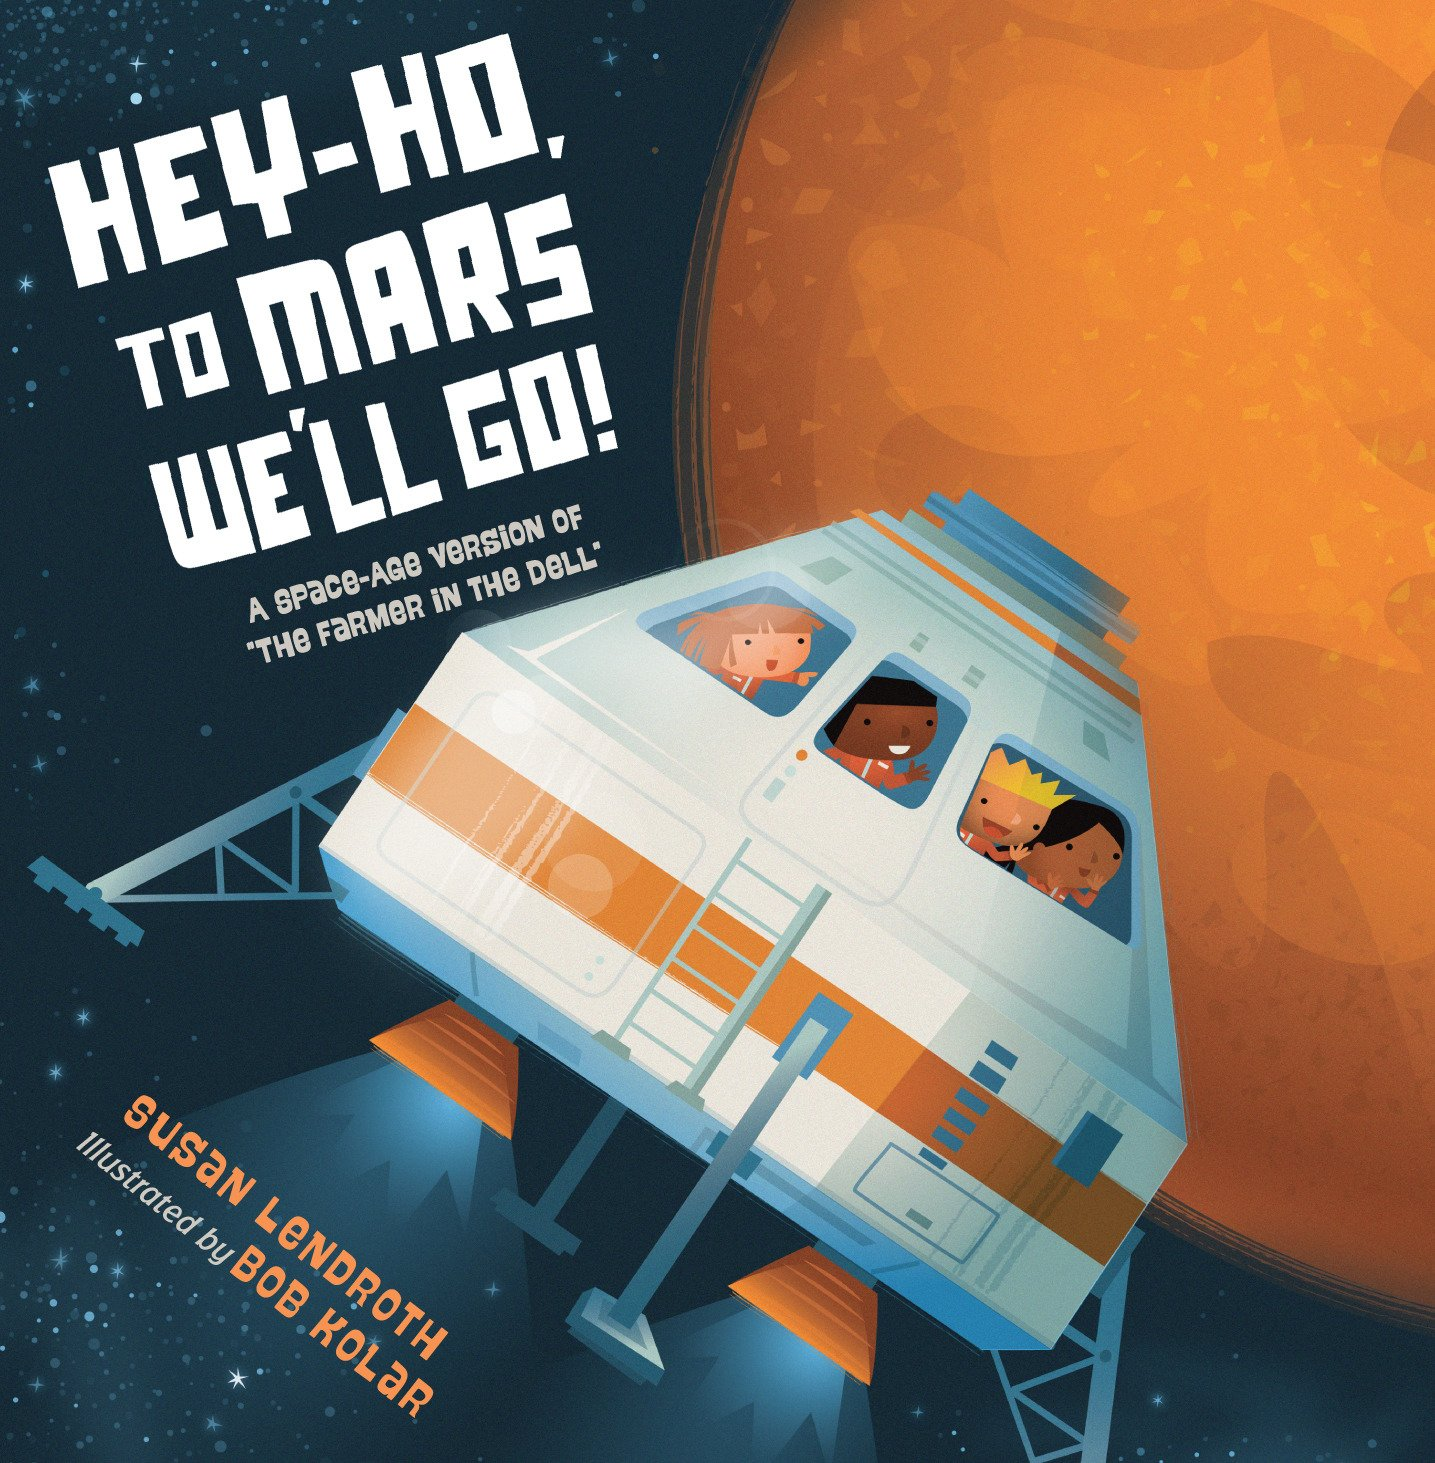 Hey-Ho, to Mars We'll Go!: A Space-Age Version of The Farmer in the Dell